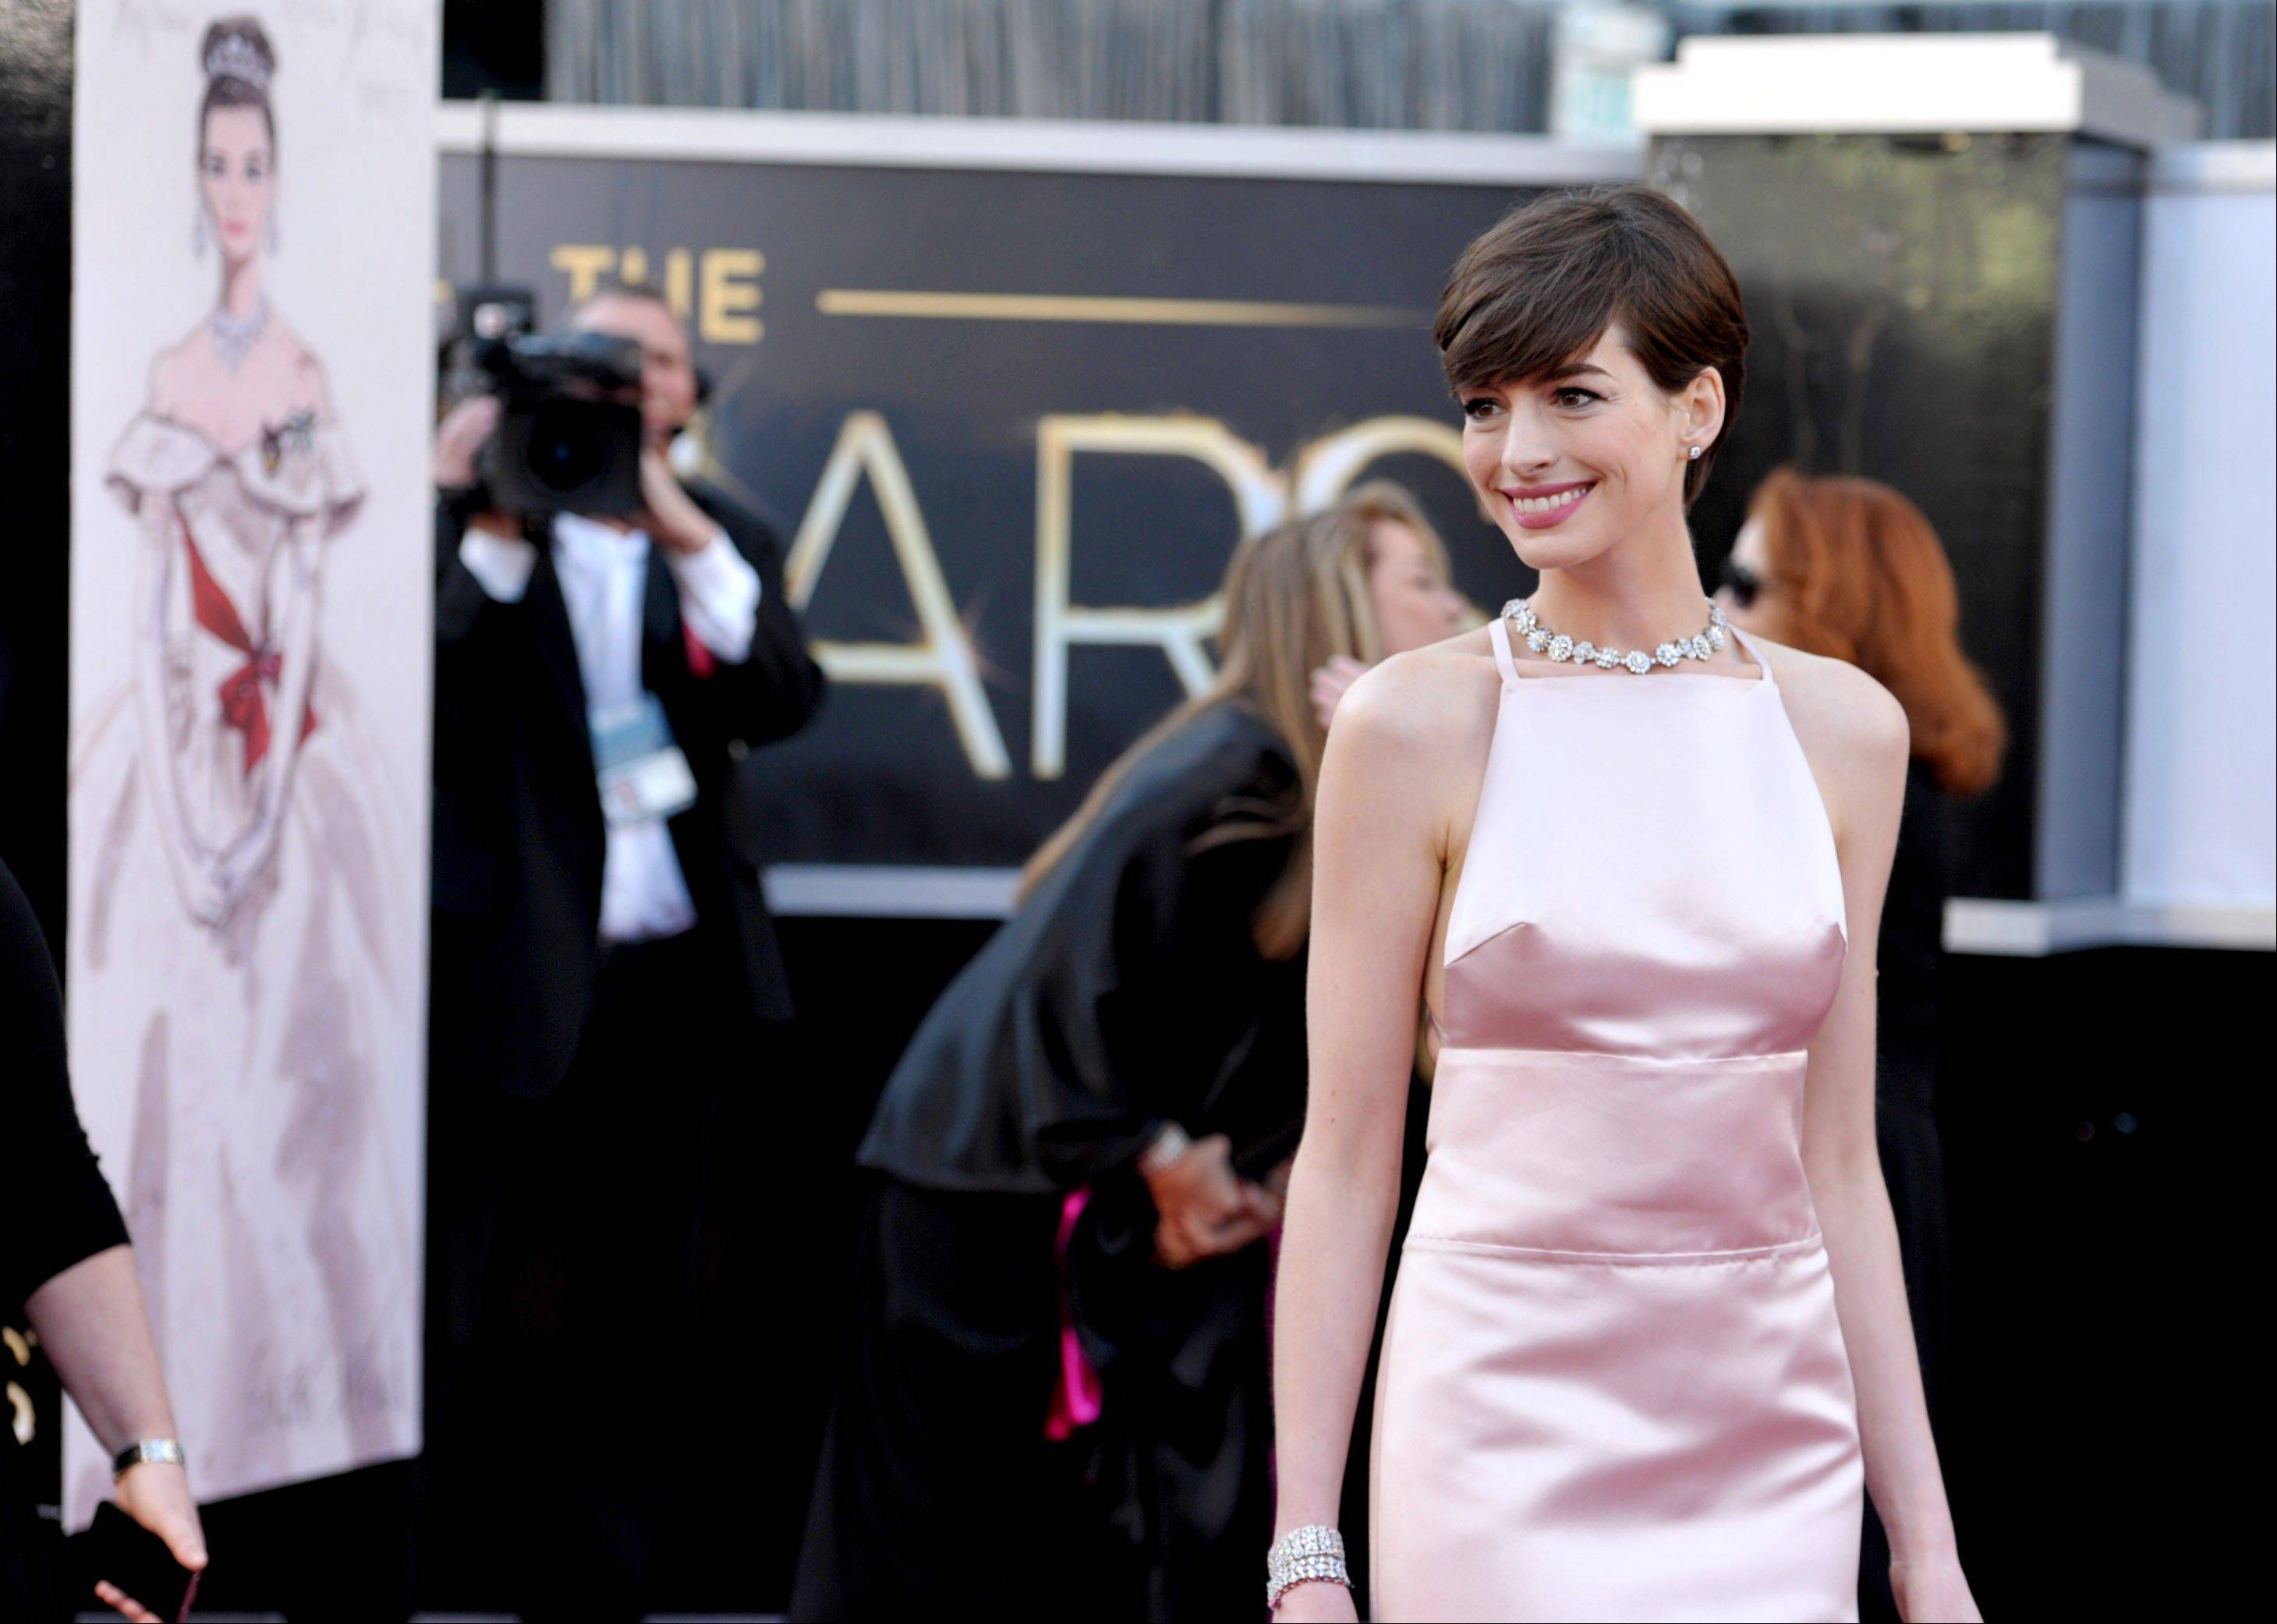 Actress Anne Hathaway arrives at the Oscars at the Dolby Theatre on Sunday in Los Angeles.